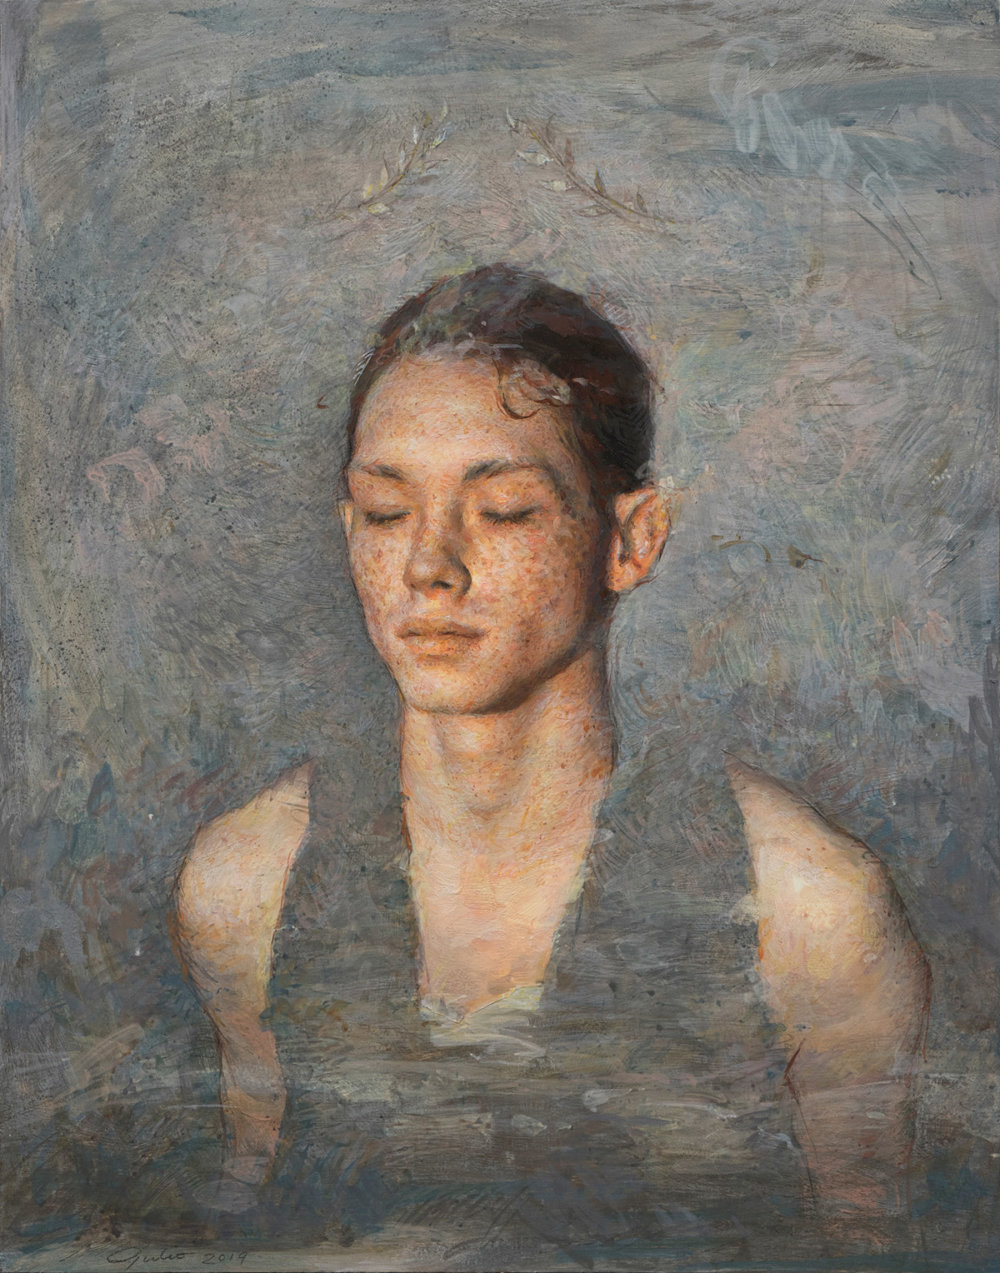 Intimate Figurative Paintings By Julio Reyes 2